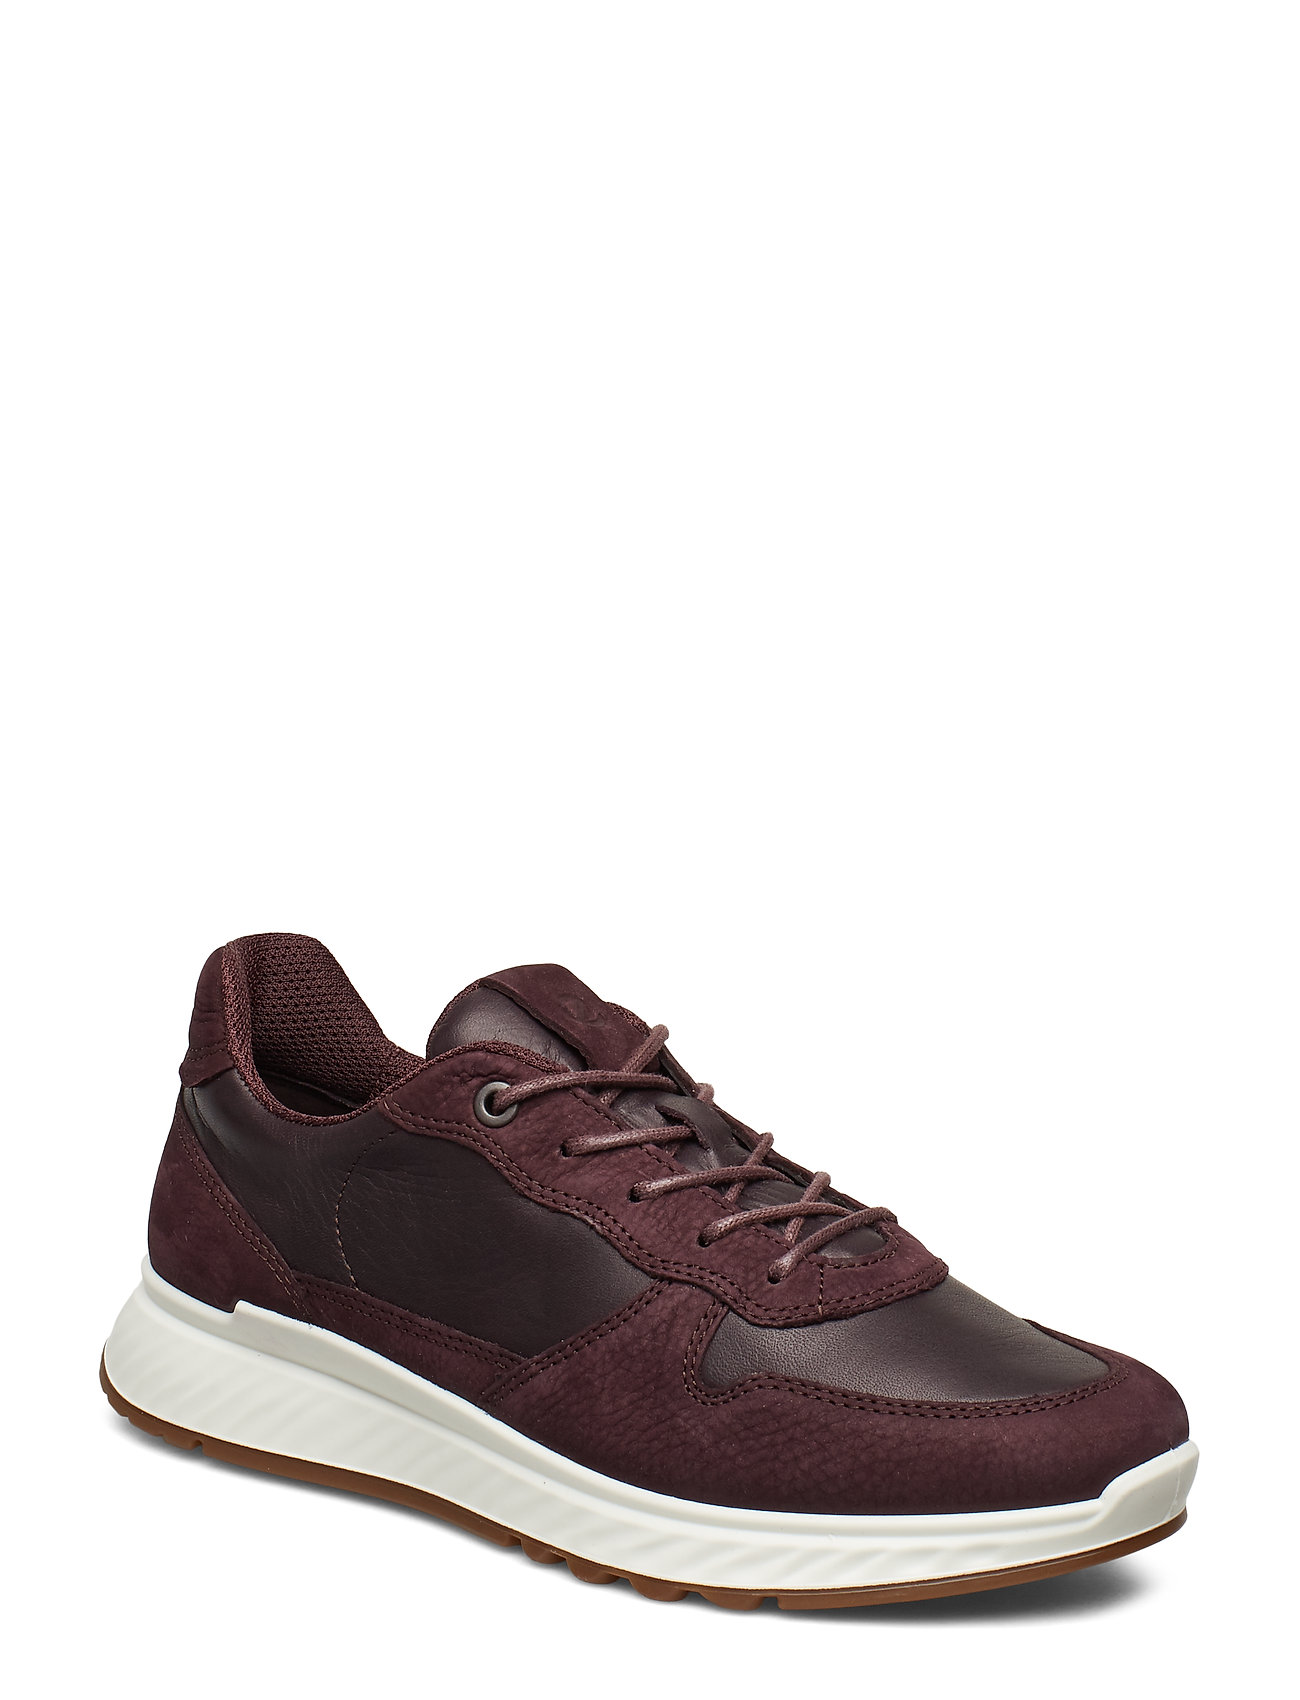 Image of St.1 W Low-top Sneakers Rød ECCO (3190774341)